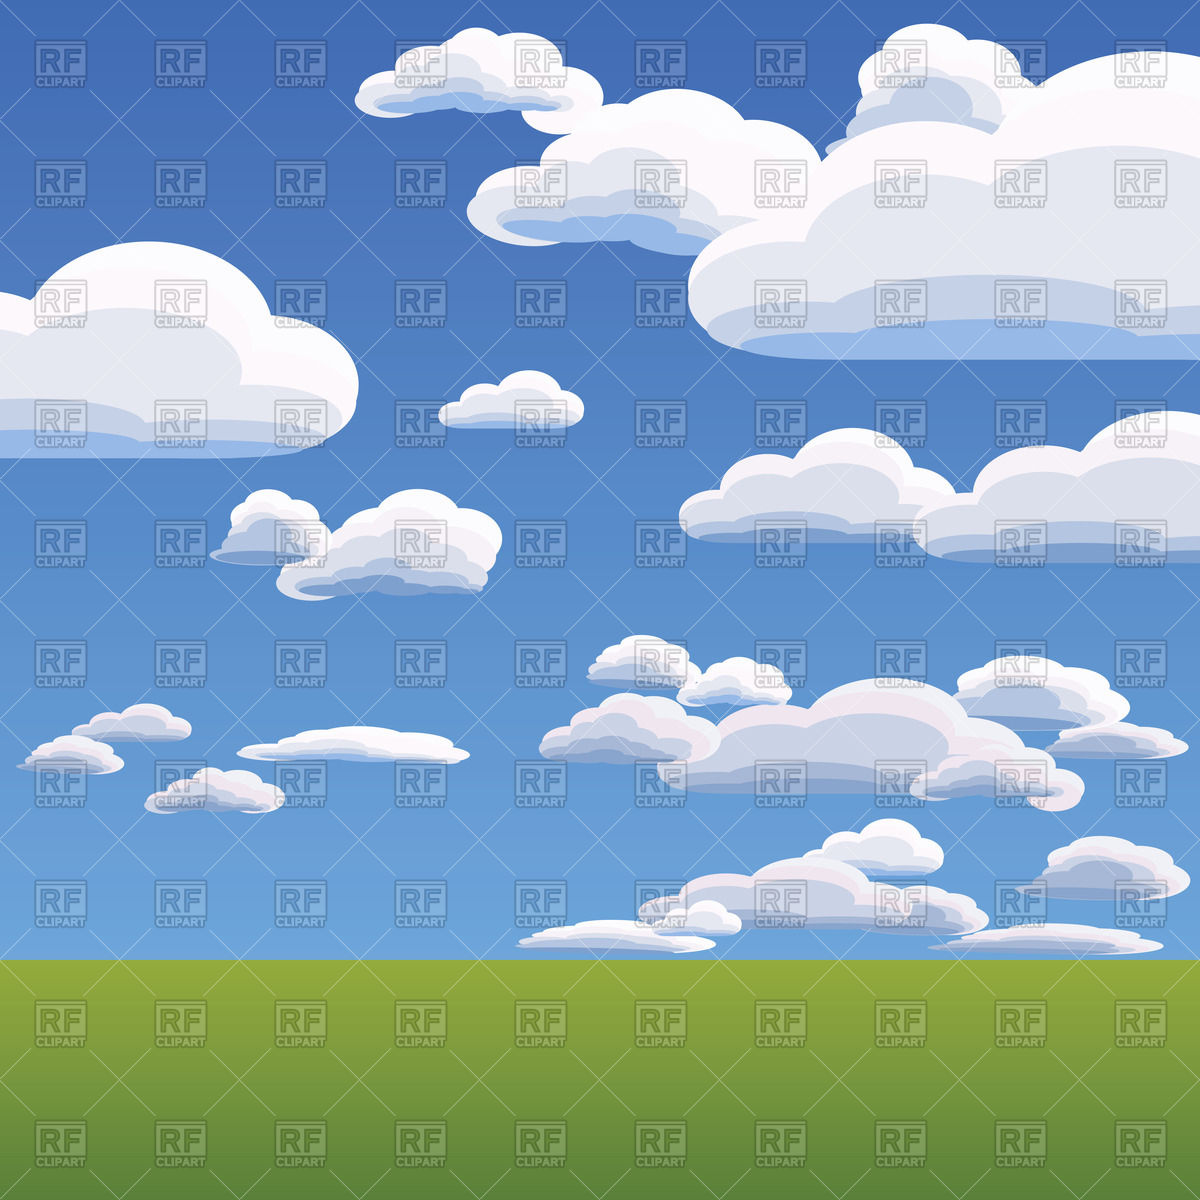 1200x1200 Summer Landscape With Heavenly Clouds Against The Blue Bright Sky